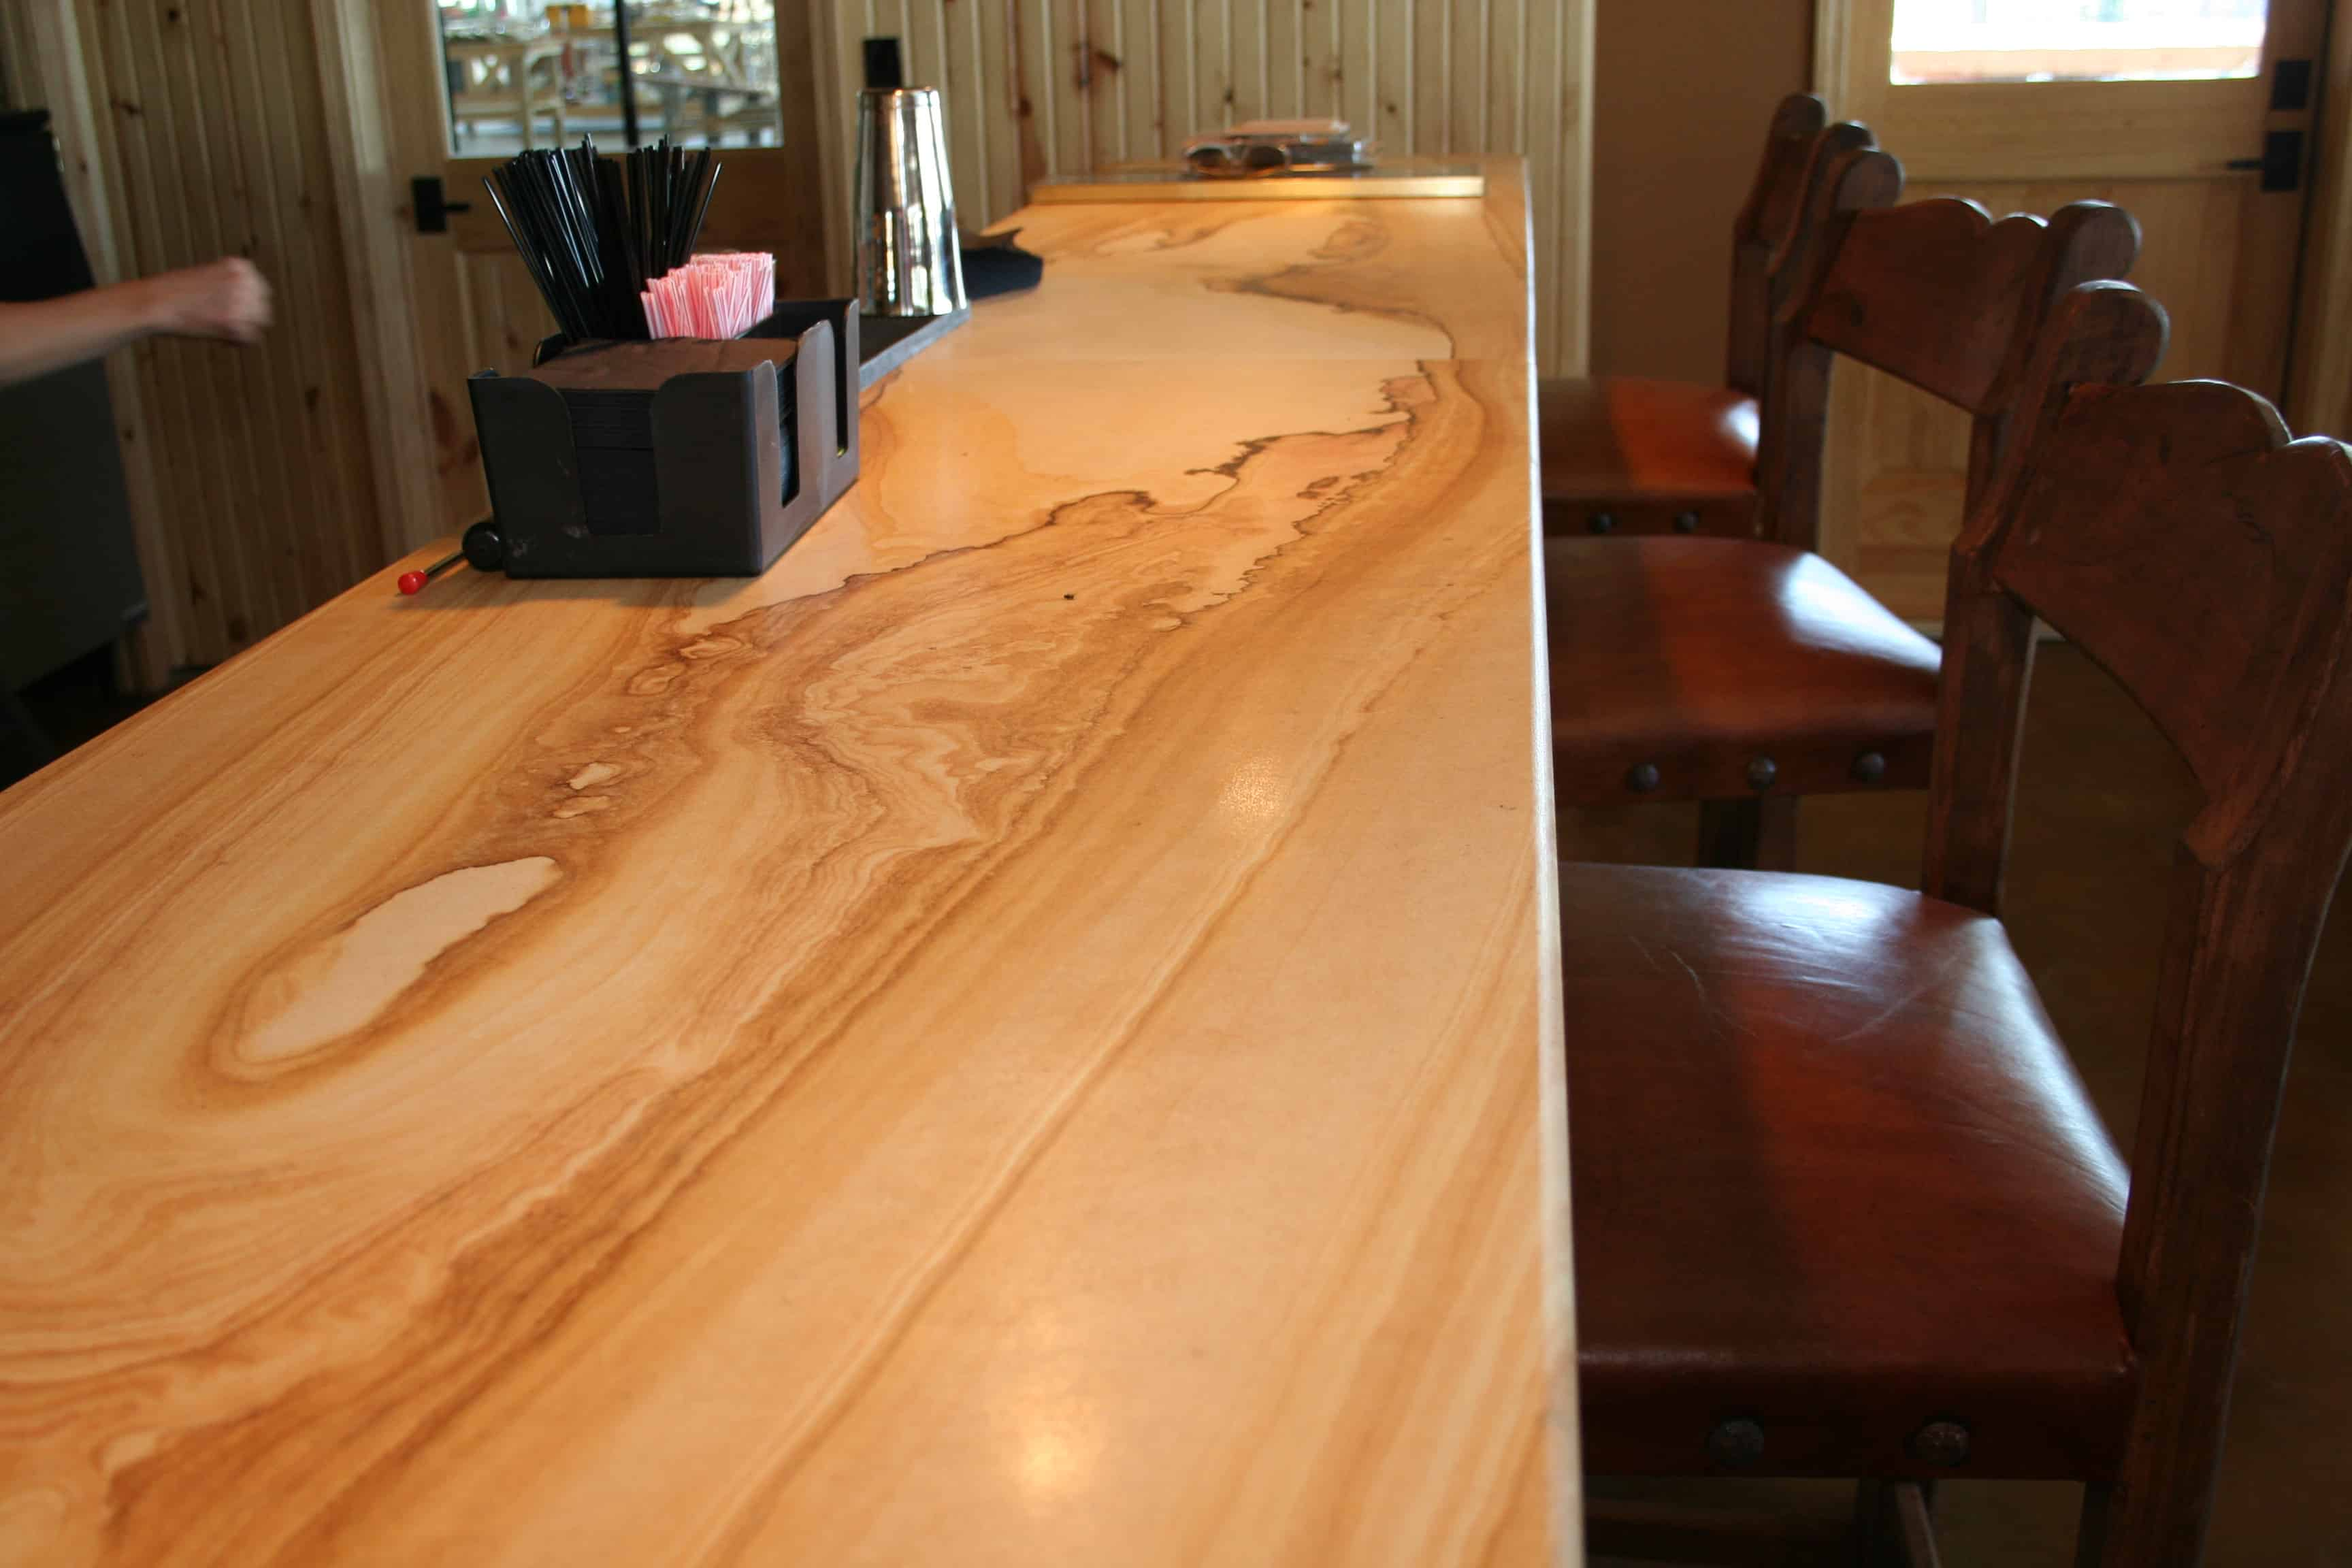 granite countertops cost kitchen countertops prices Marble Countertops Are Sandstone Countertops a Good Choice for Kitchens